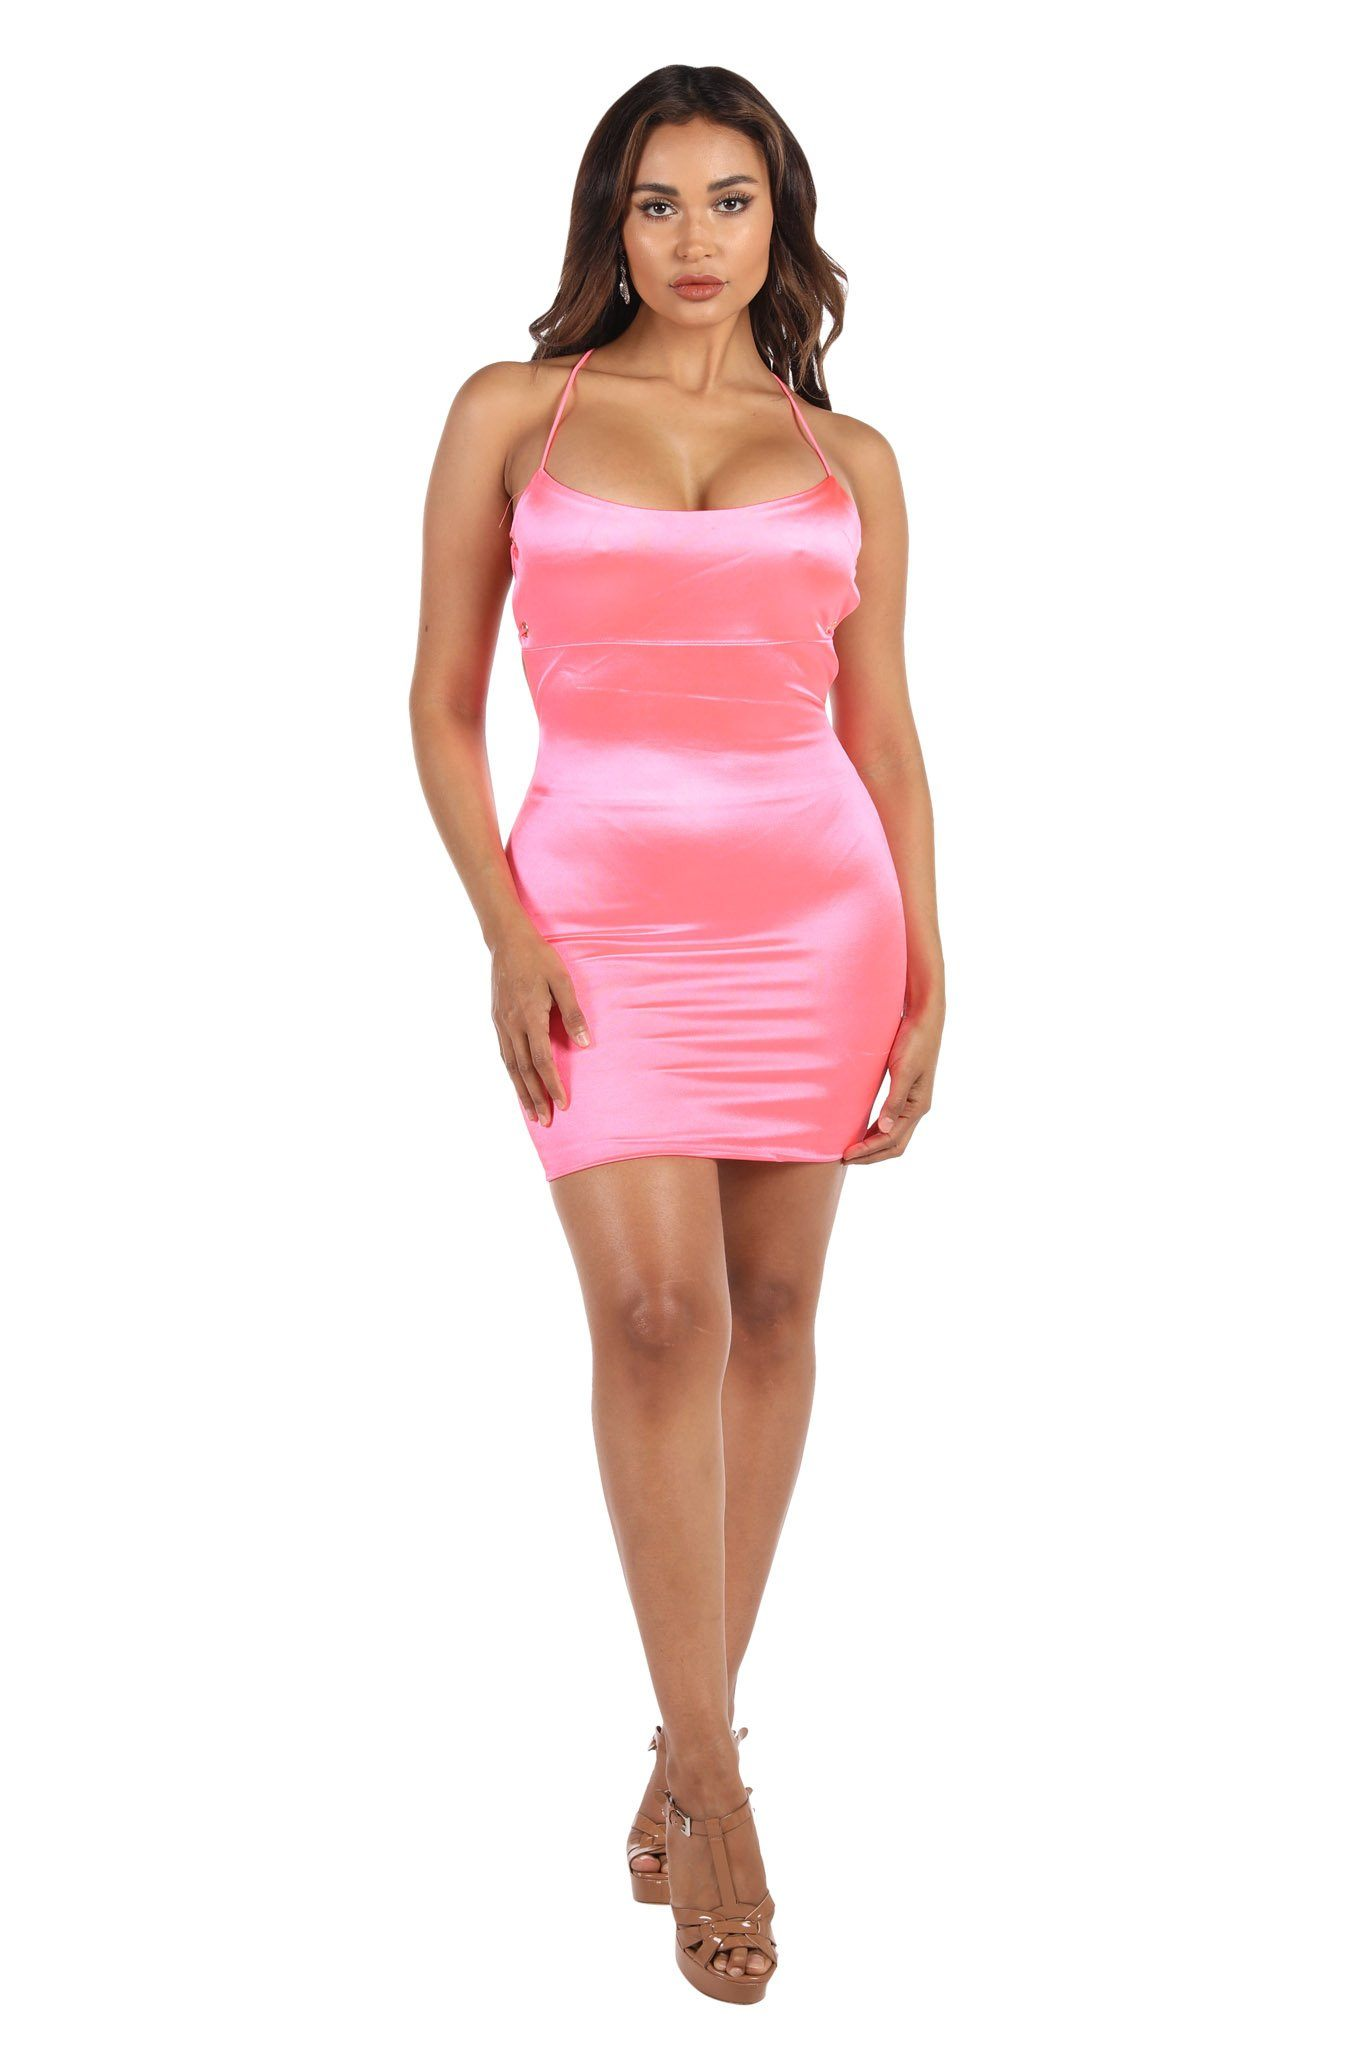 Tight Neon Hot Pink Mini Dress with Lace Up Back Design